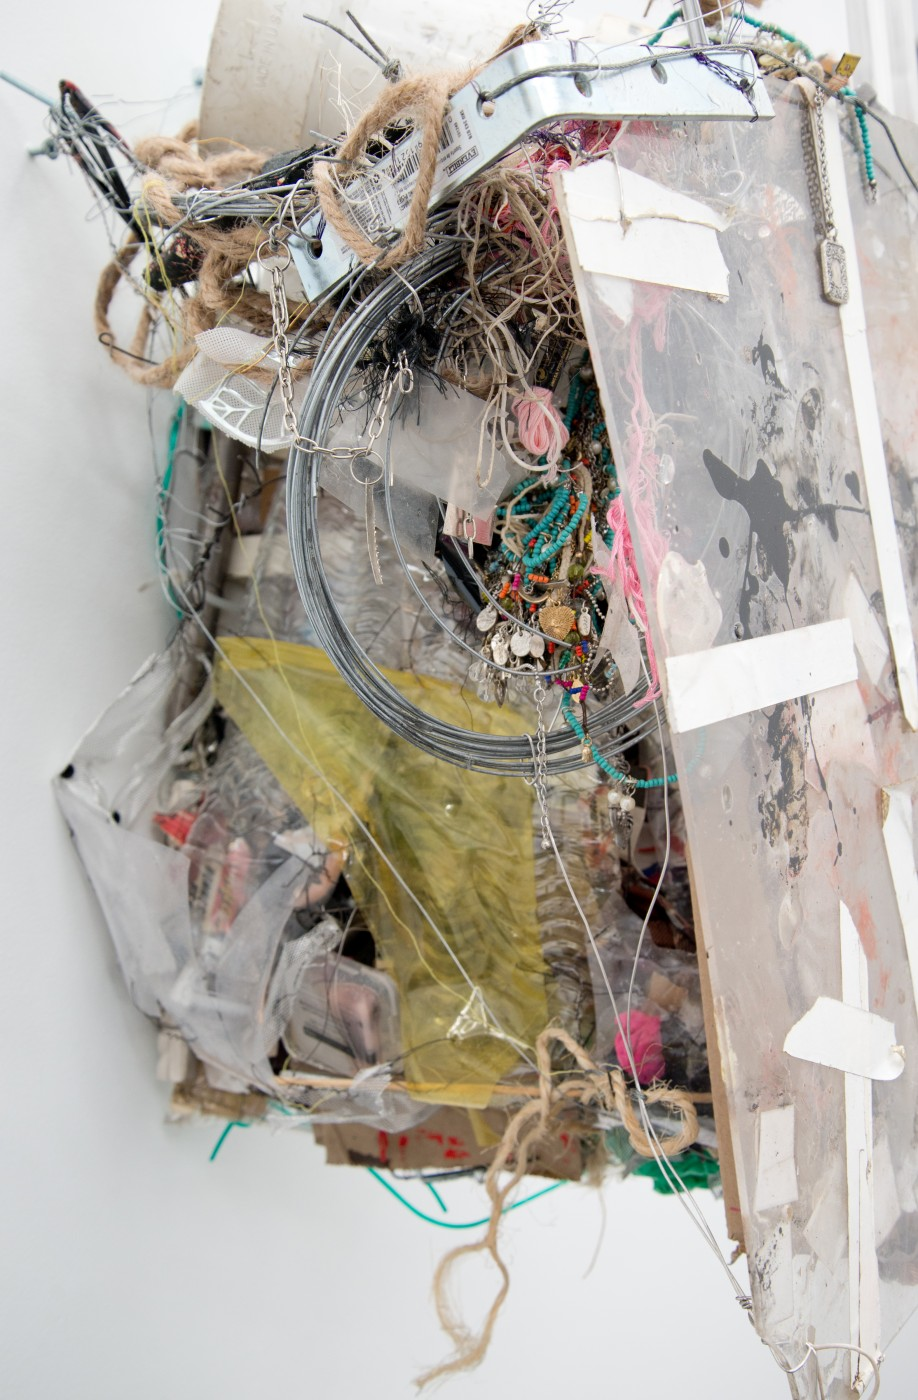 METROPOLITAN  The Student's Tale</I>, 2015 (detail) Mixed media 62 x 42 x 42 cm / 24.4 x 16.5 x 16.5 in